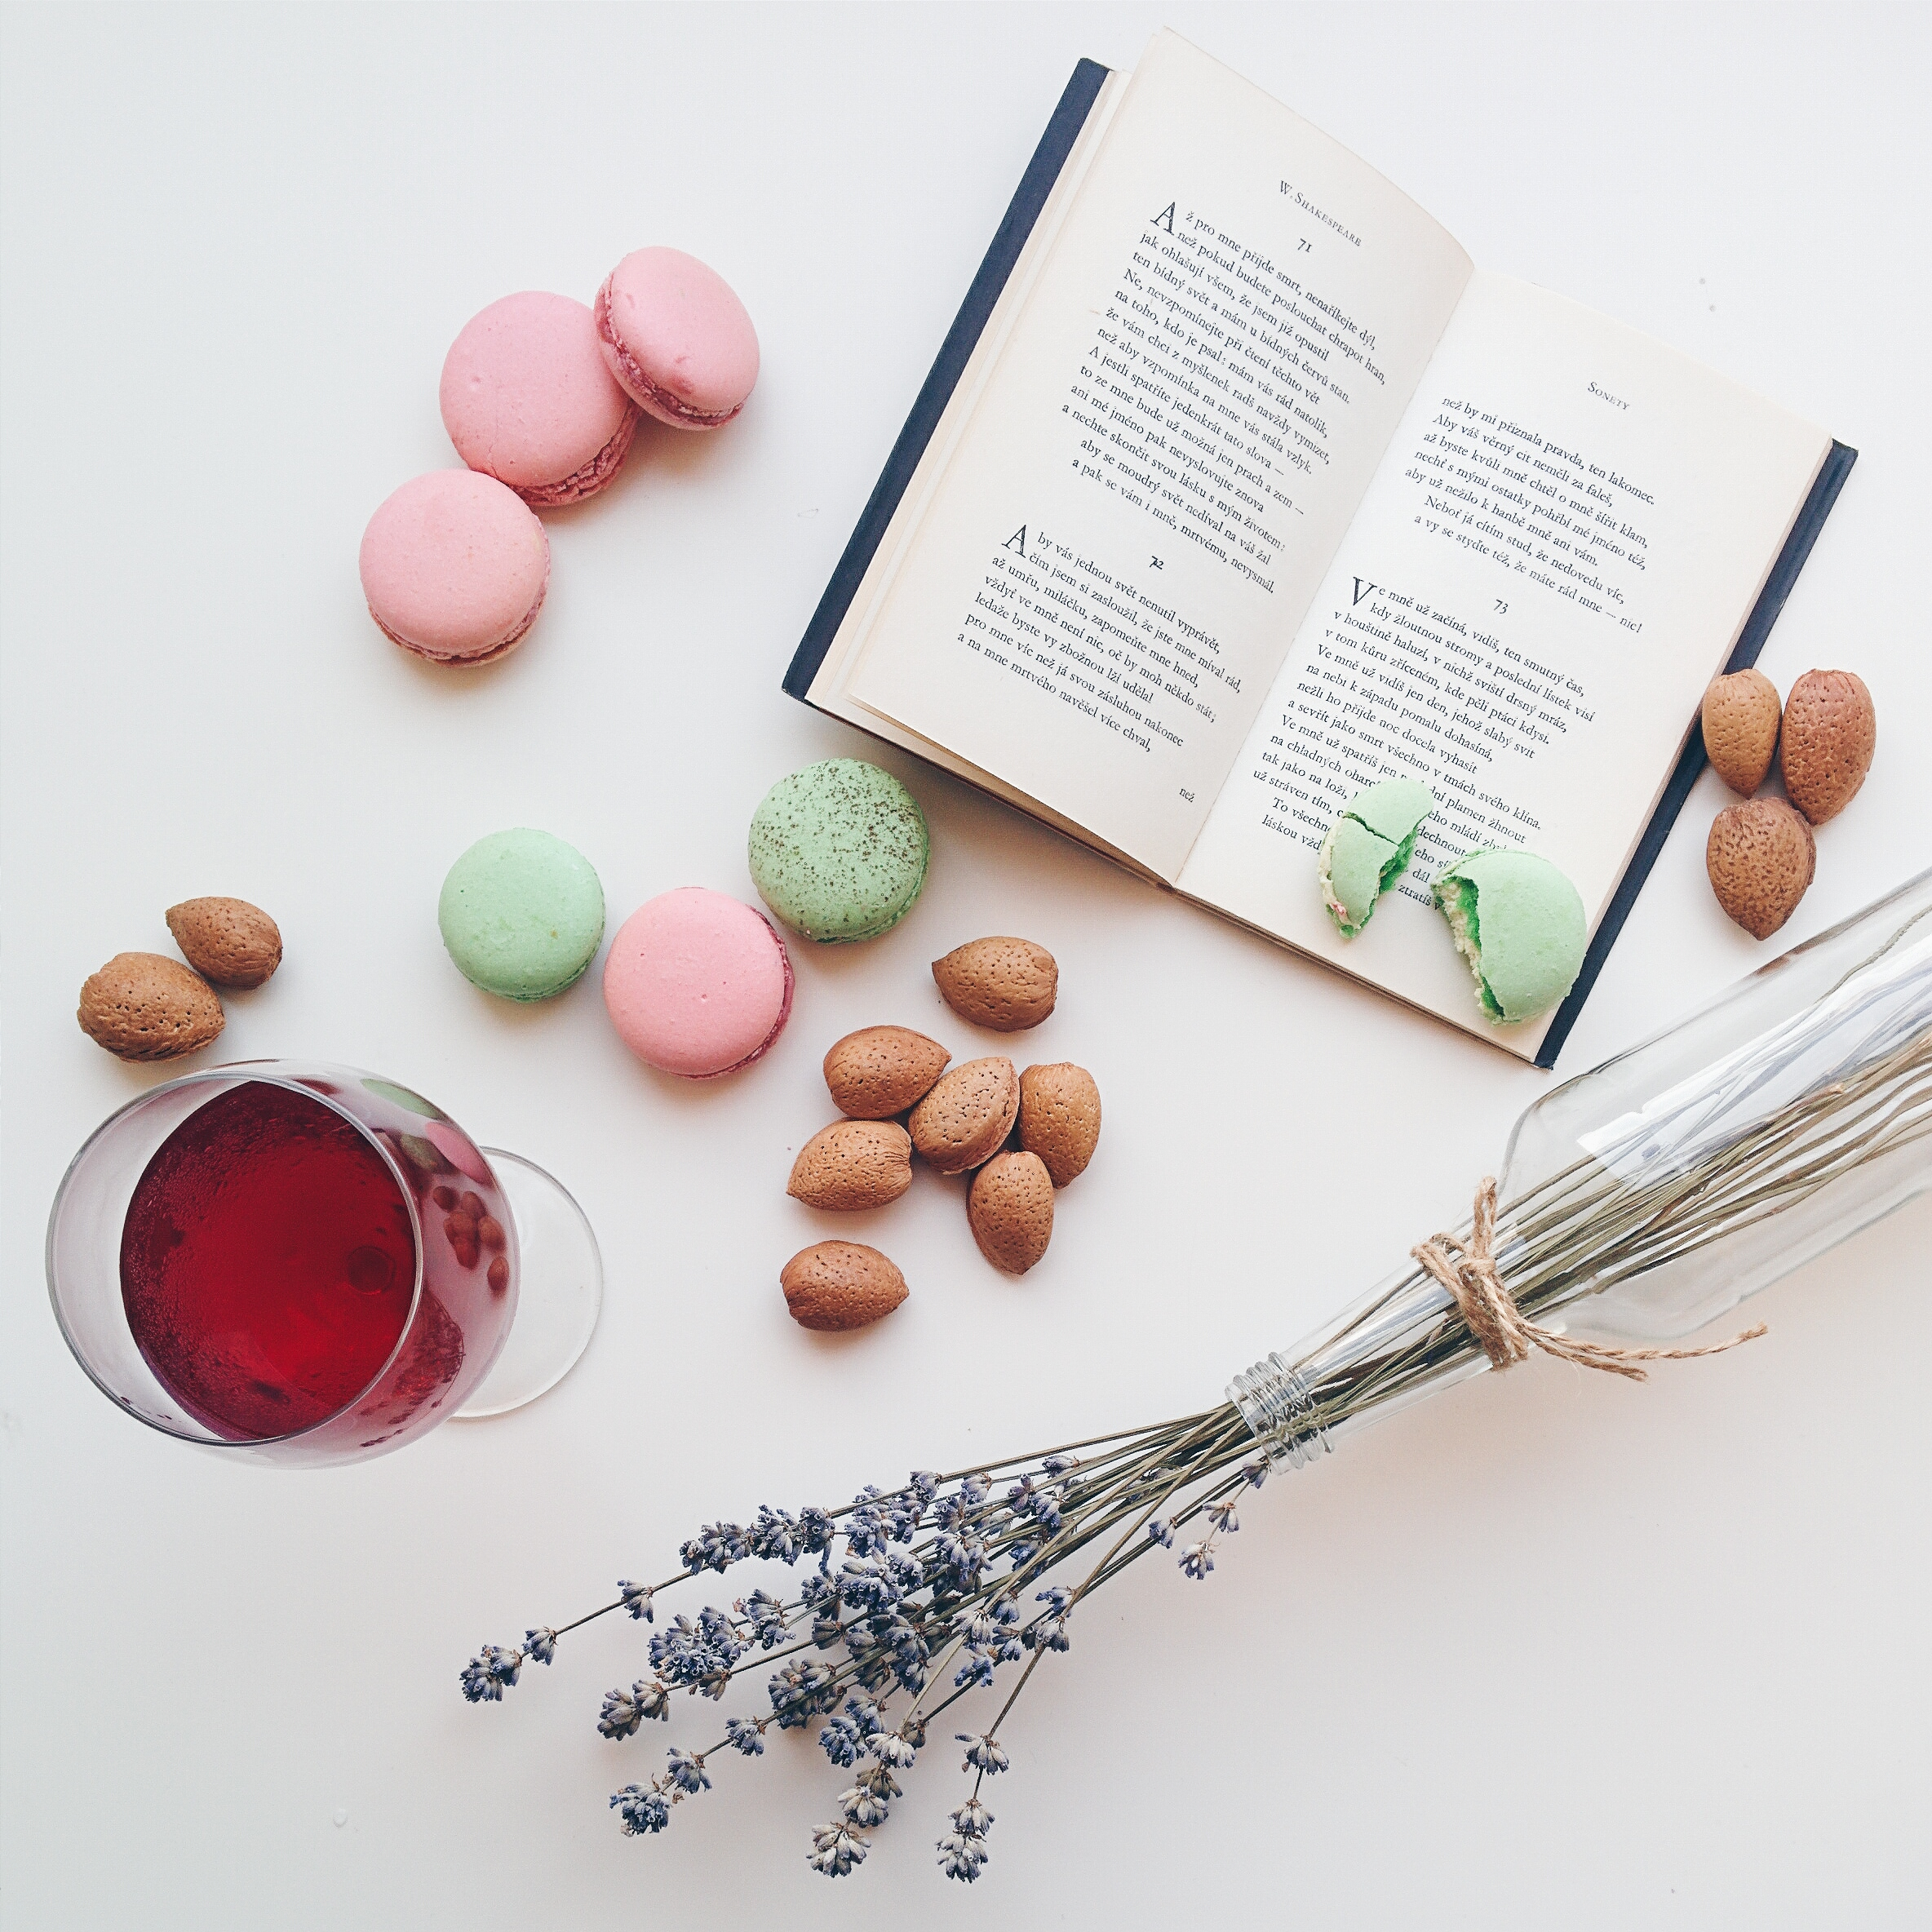 Relax with macarons, drink and a book